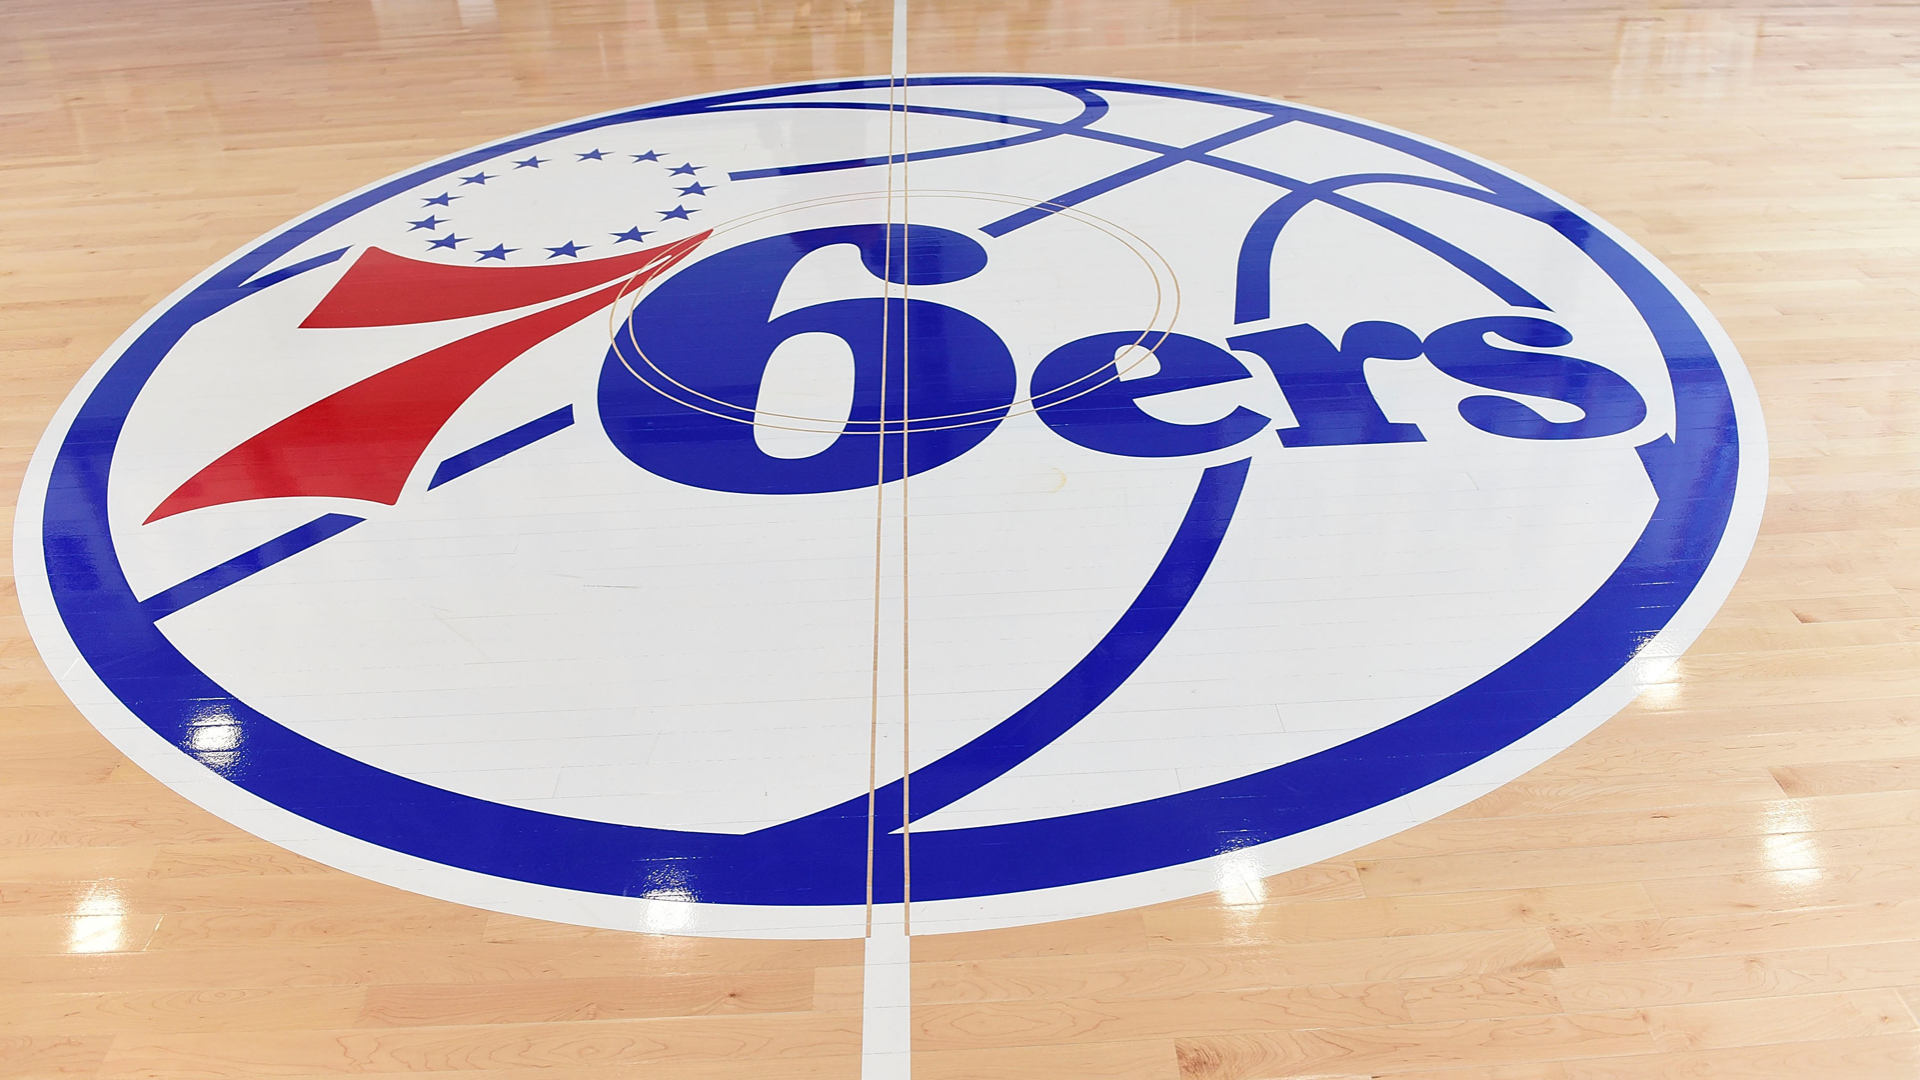 76ers dancer says she was 'bullied and racially targeted' for years while team ignored problem 1